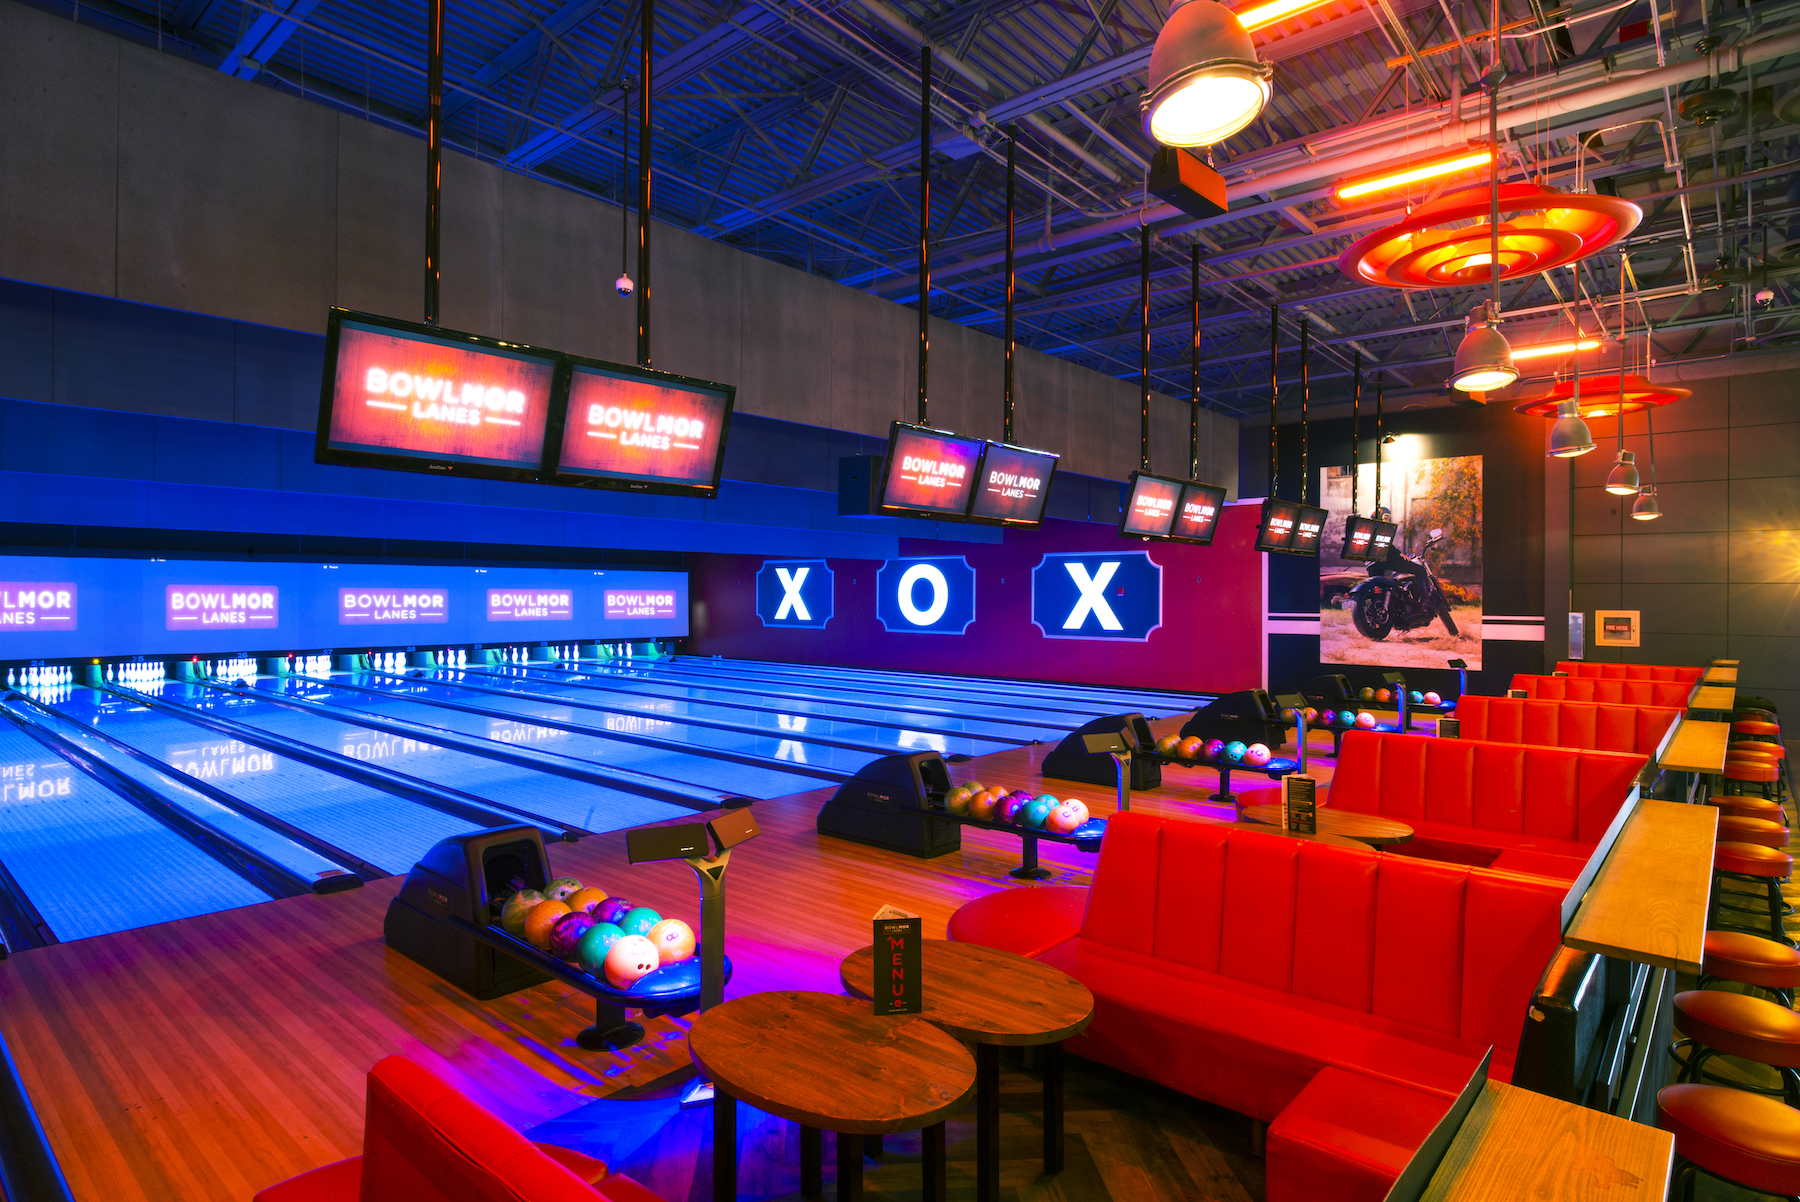 Bowlmor Chelsea Piers event space in New York City, NYC, NY/NJ Area